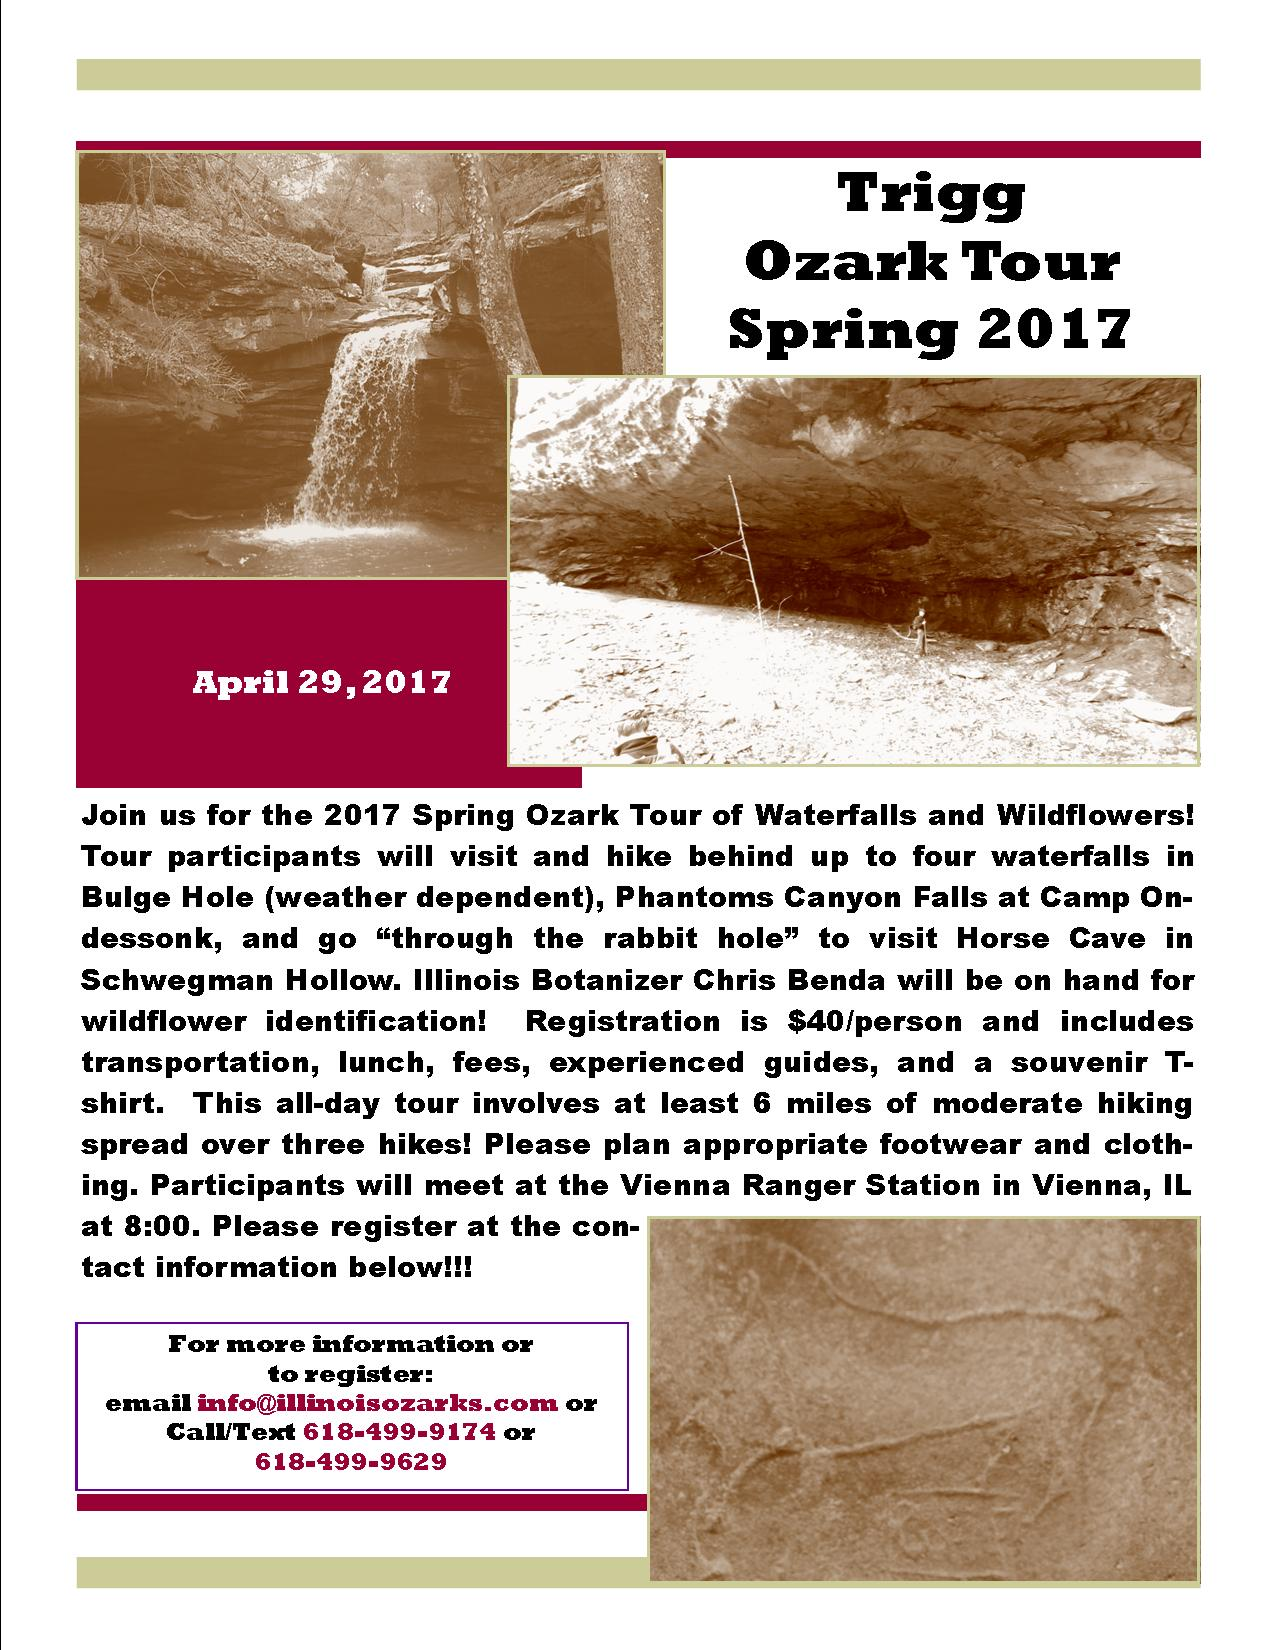 OzarkTourSpring2017Flyer